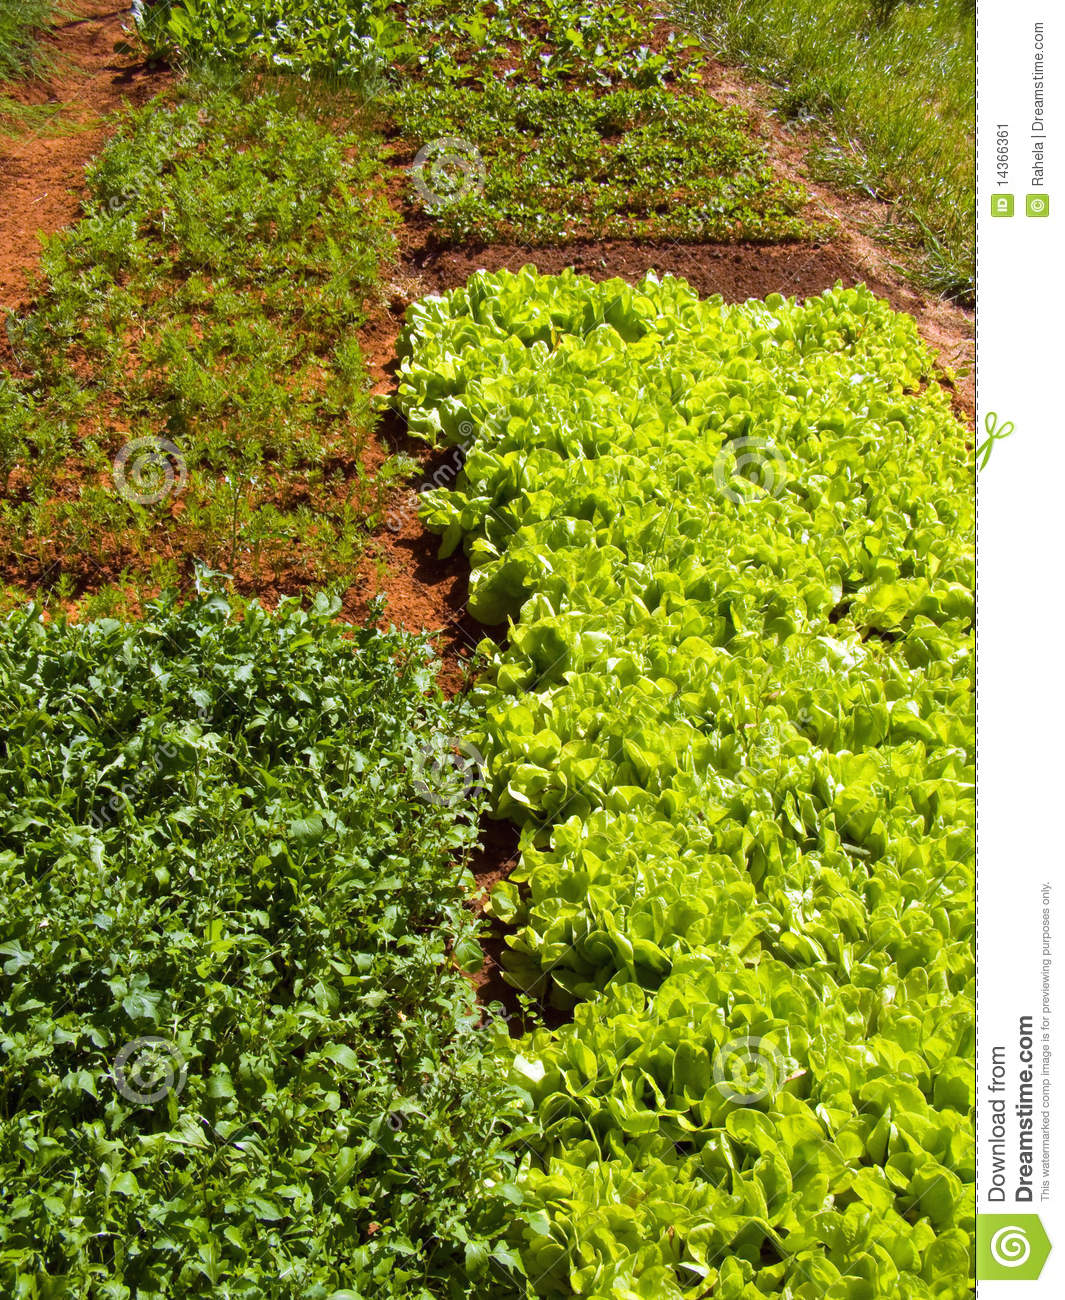 Garden vegetable patch stock image image 14366361 for Garden vegetable patch